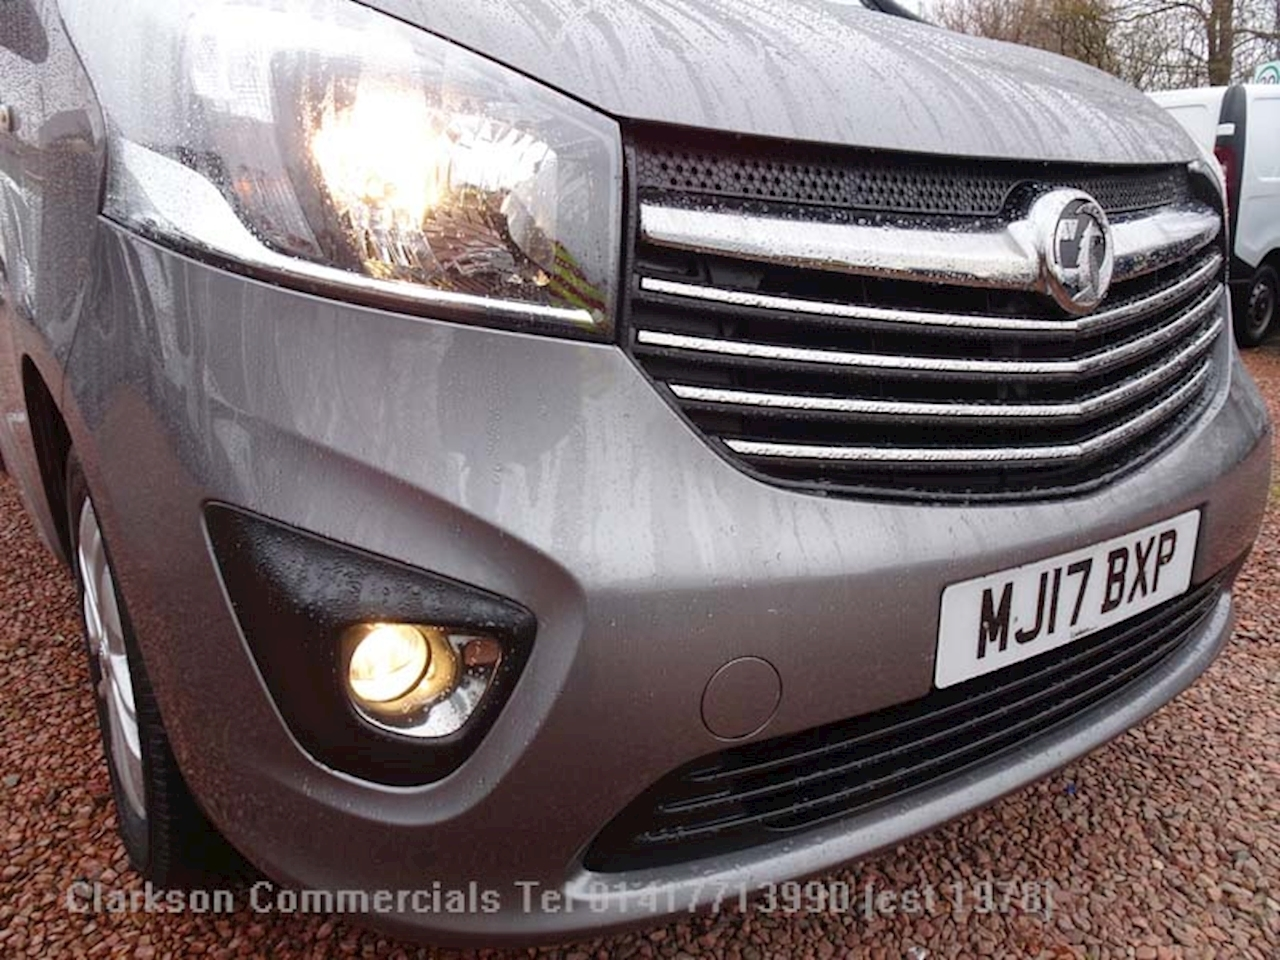 Vauxhall Vivaro 2700 L1H1 Limted Edition CDTi BiTurbo in oyster grey, 1.6 Panel Van Manual Diesel